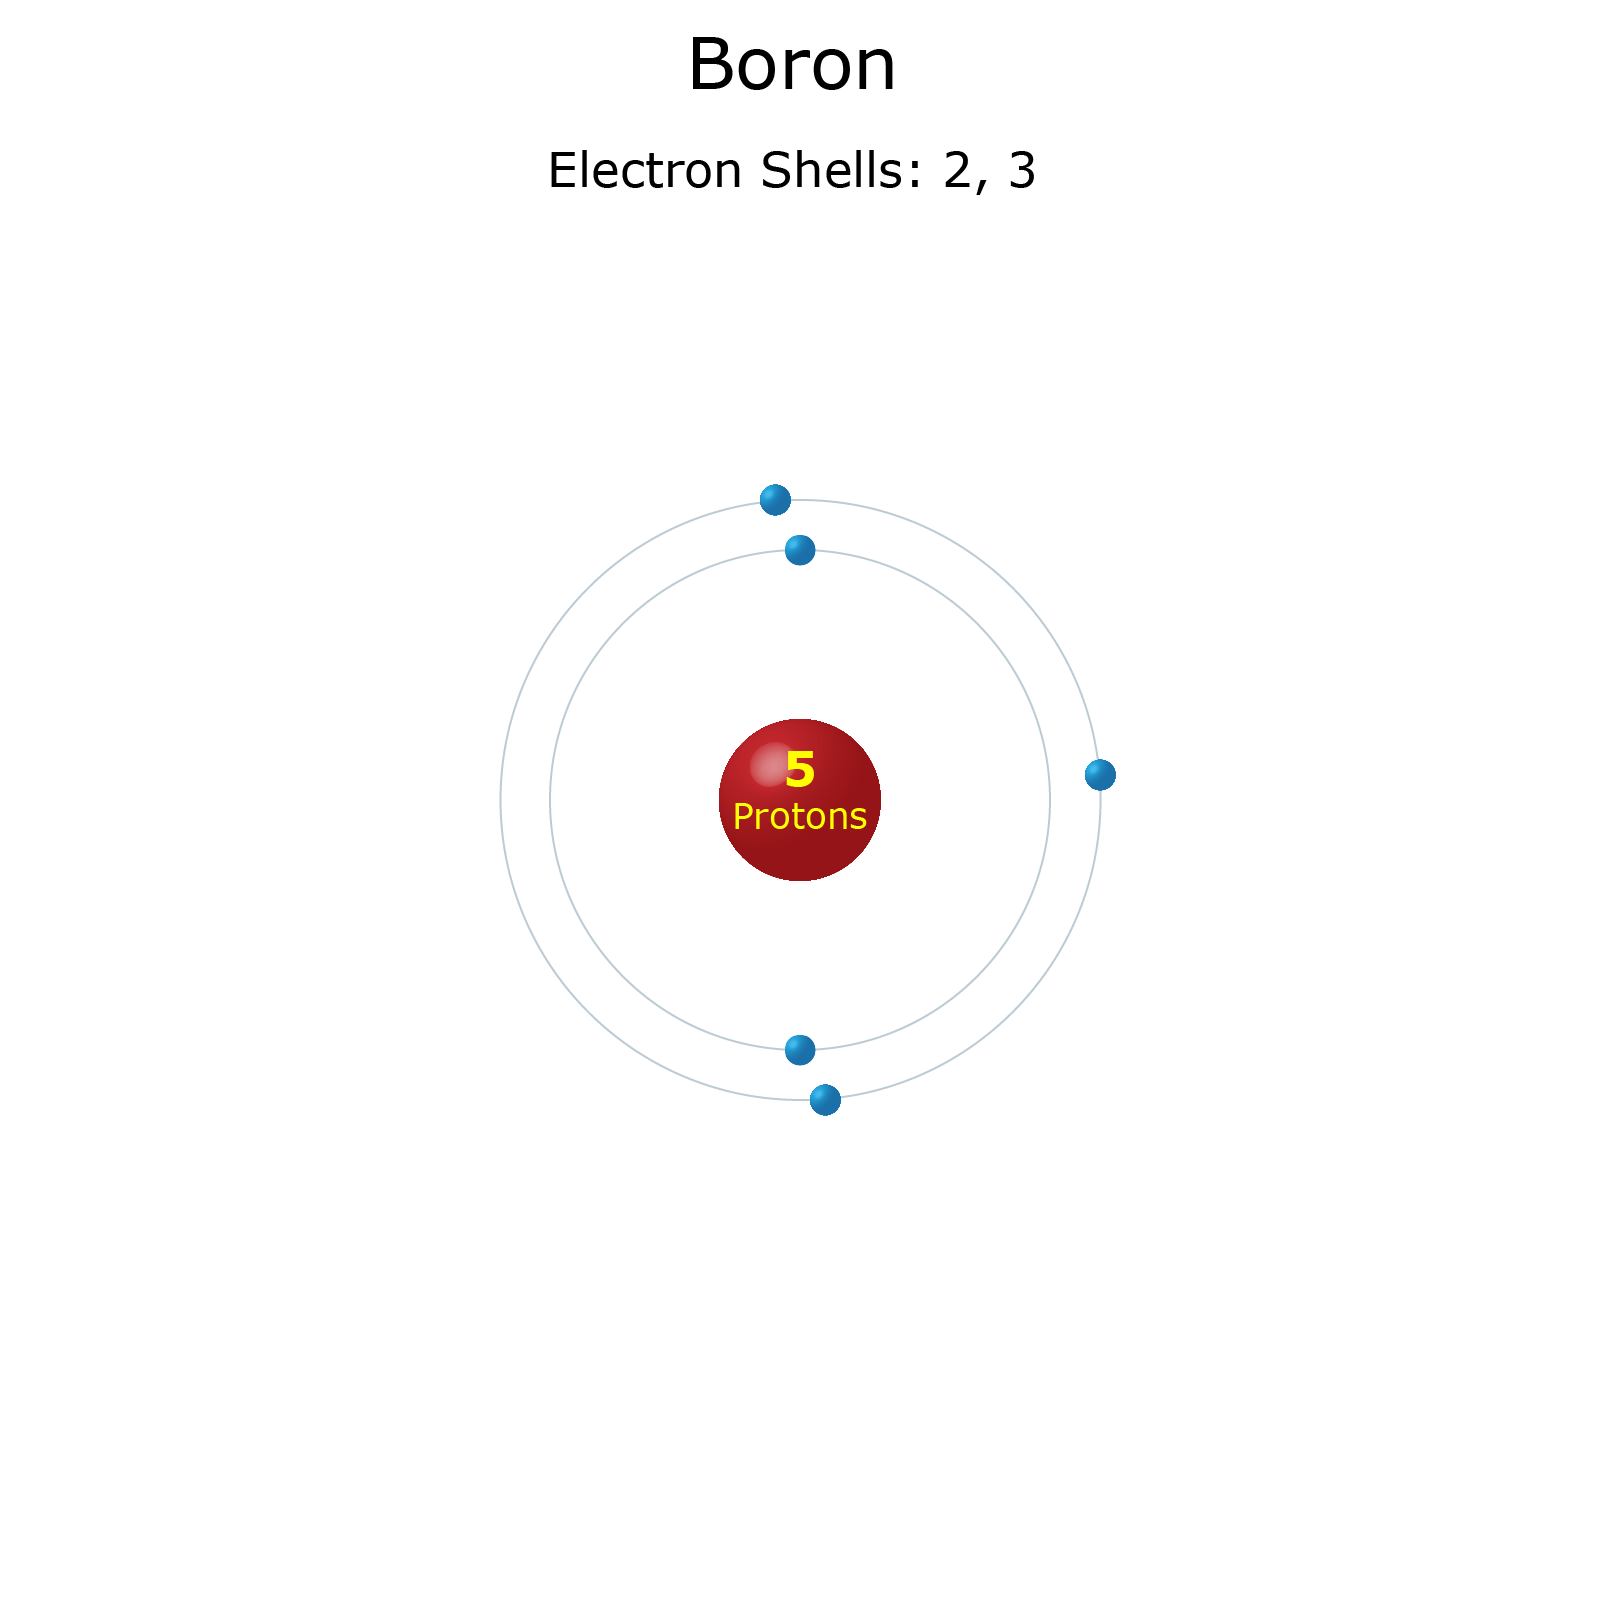 energy level diagram for boron nail plate electron shell diagrams of the 118 elements